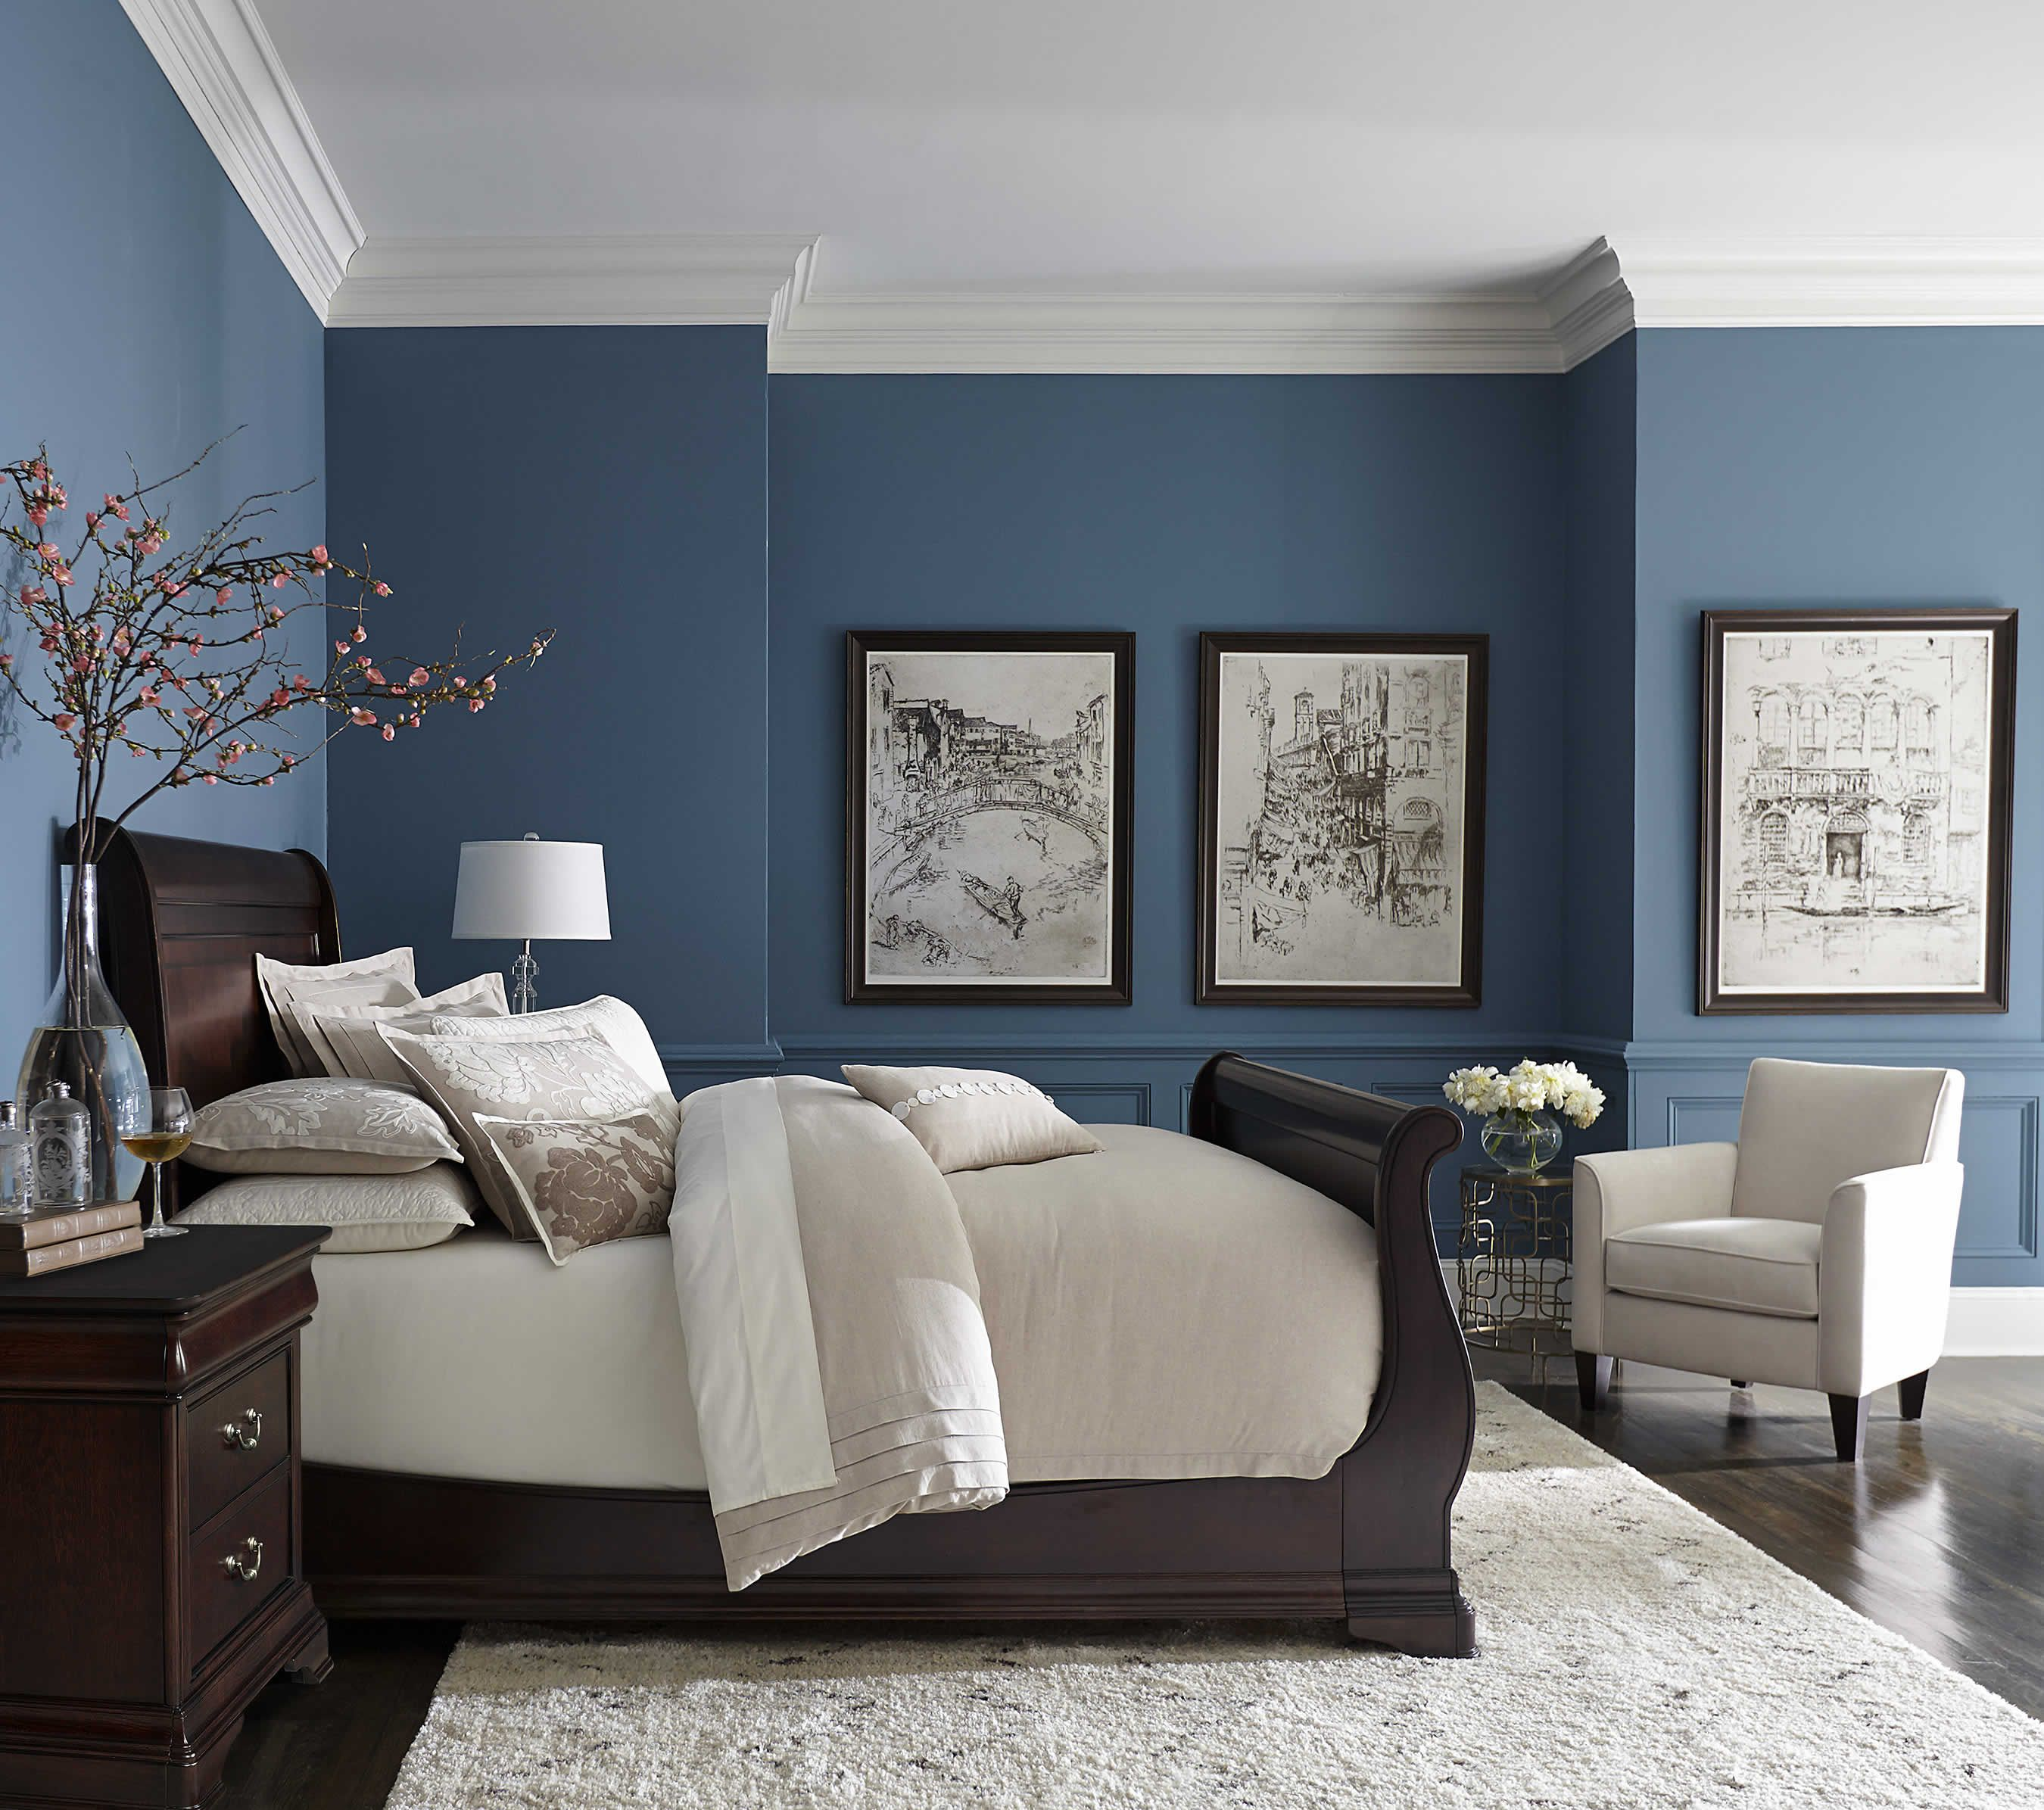 Pretty blue color with white crown molding home Blue and tan bedroom decorating ideas